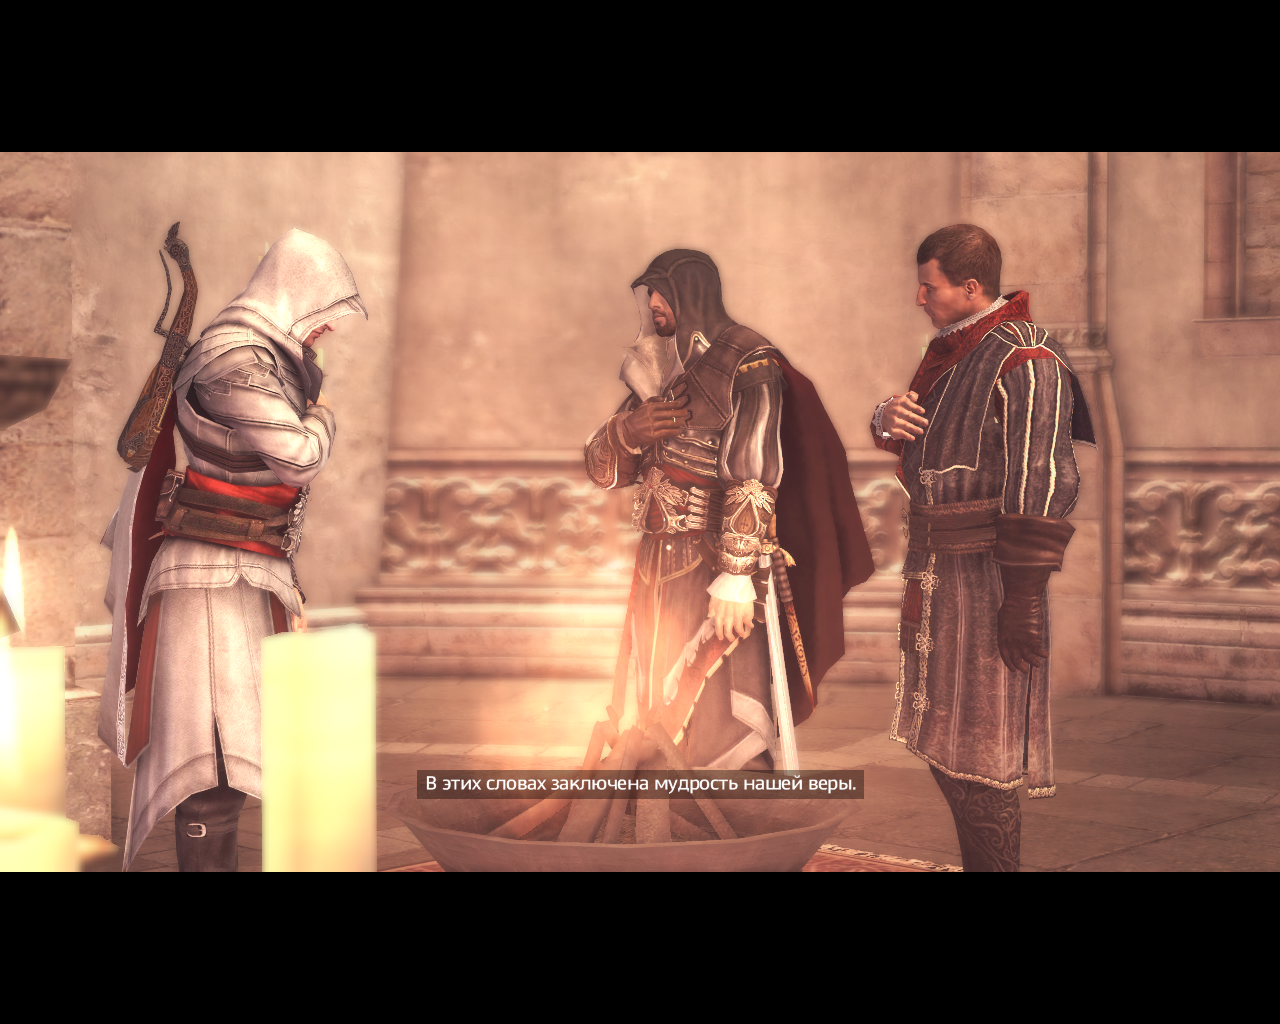 Assassin's Creed: Brotherhood Windows A recruit has become an assassin